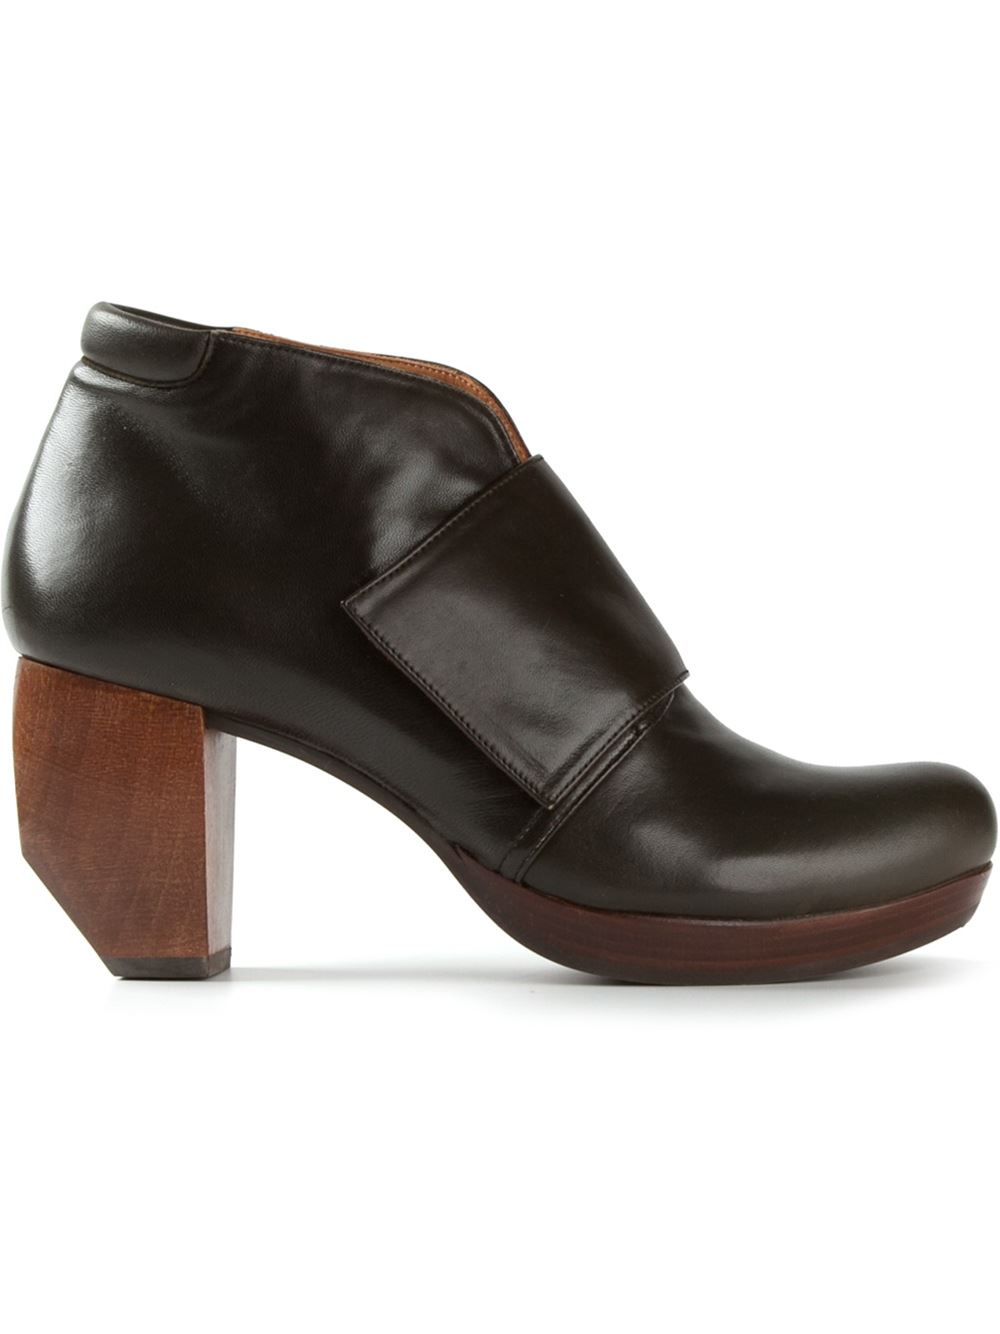 Chie mihara &39Downtown&39 Chunky Heel Boots in Green  Lyst